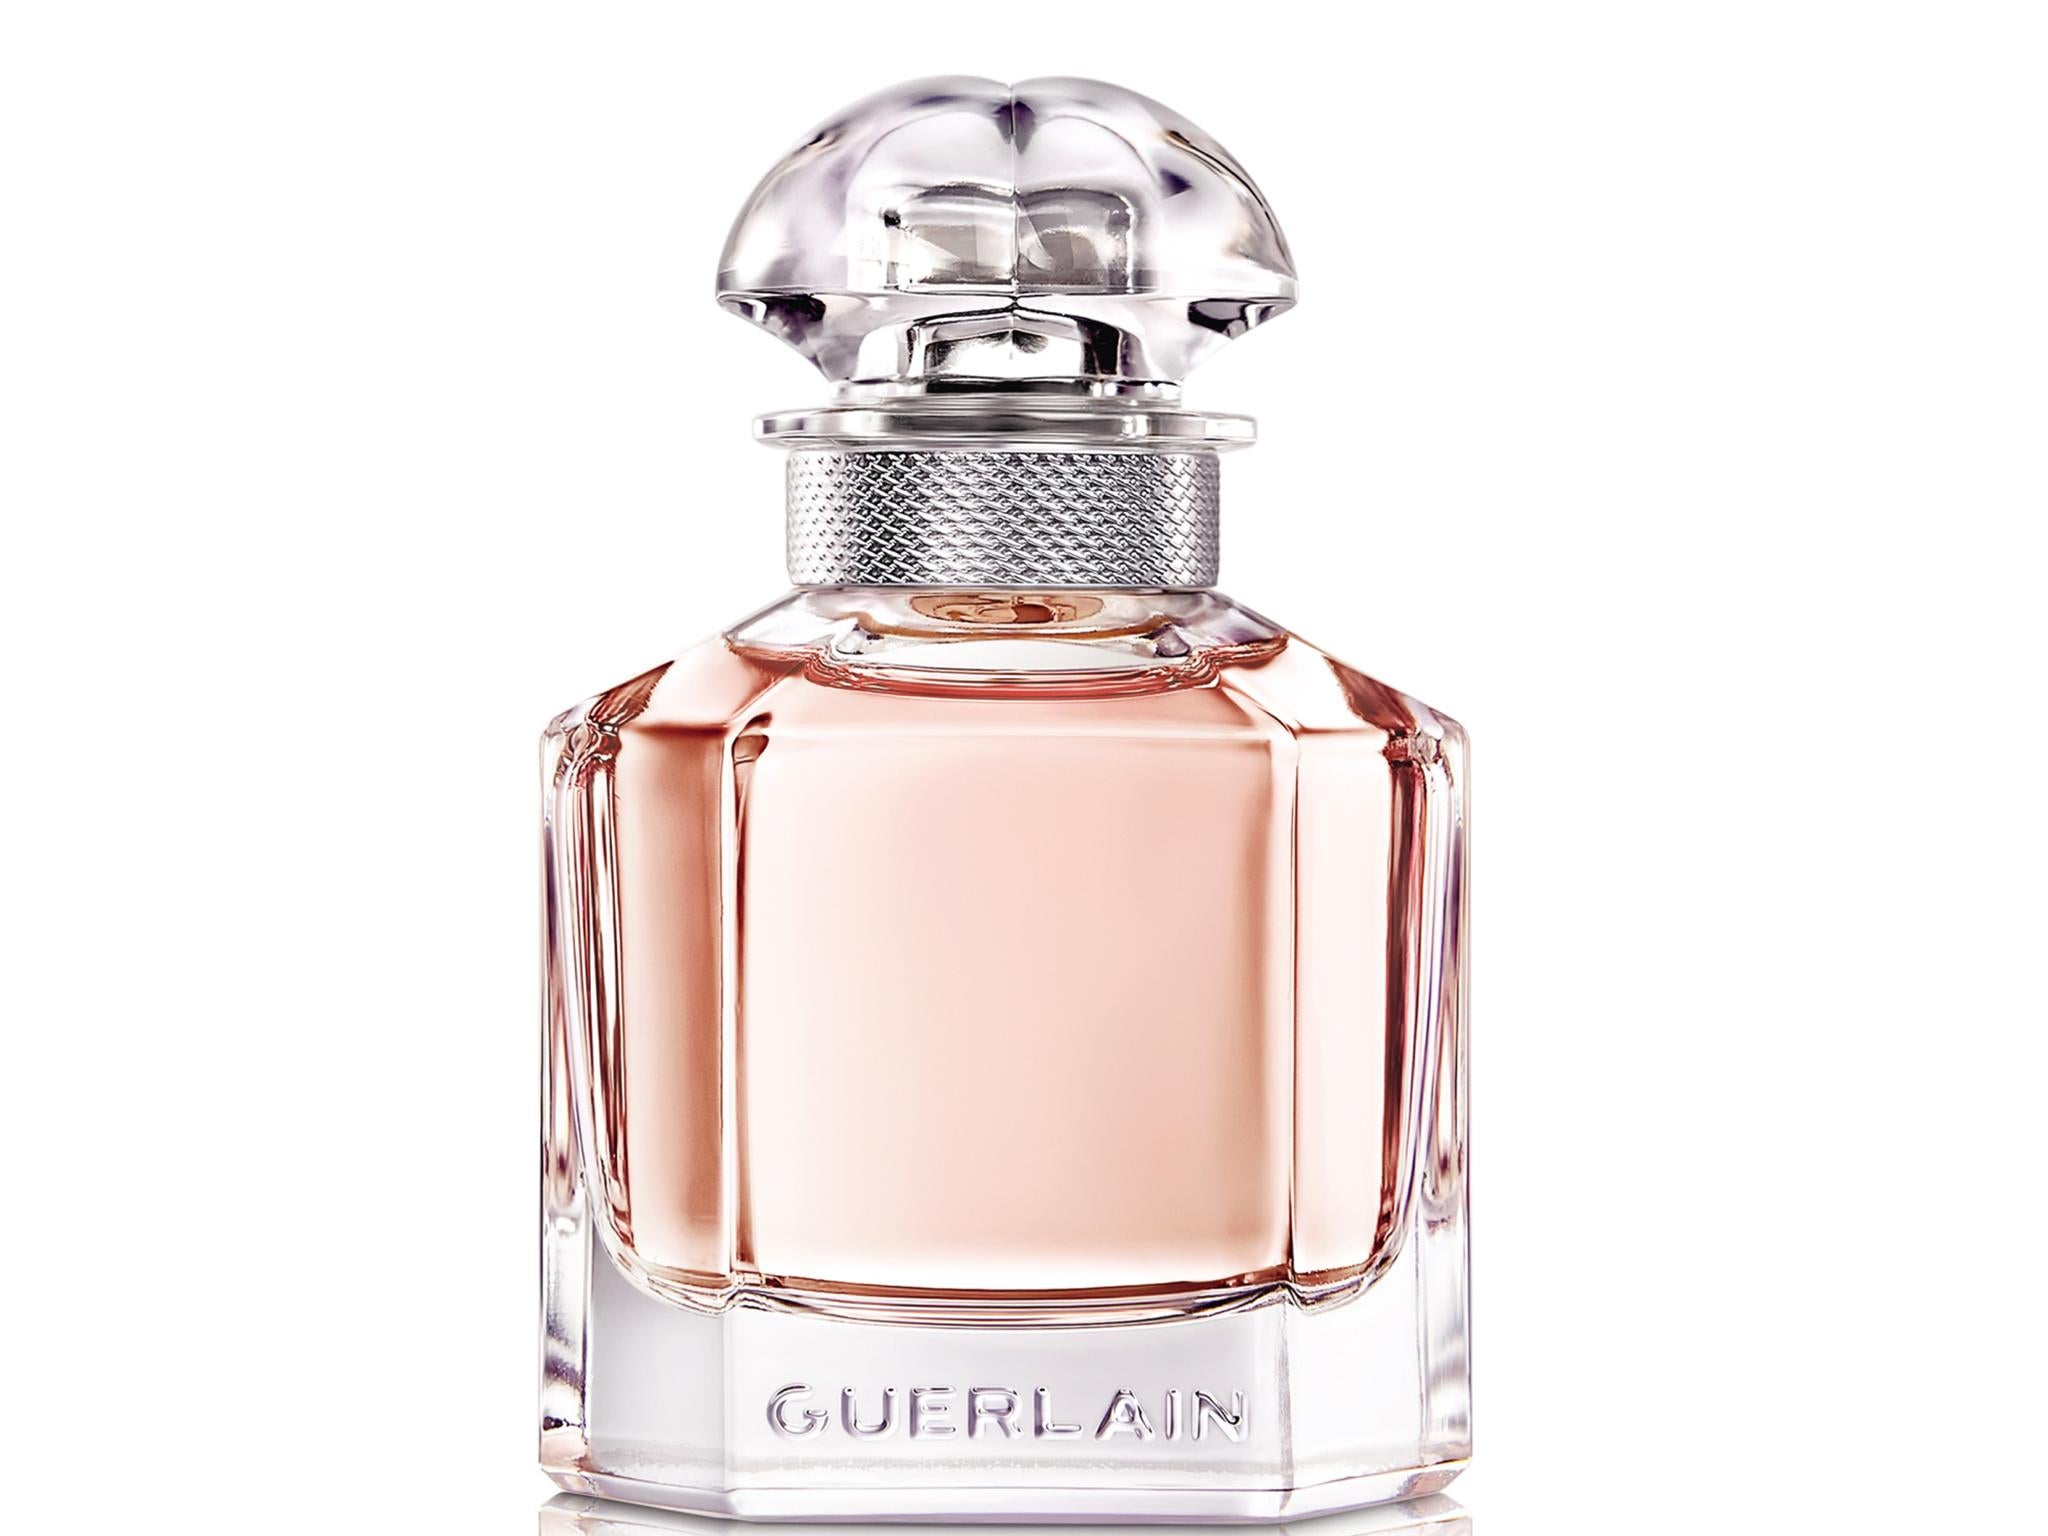 15 best classic perfumes for women | The Independent